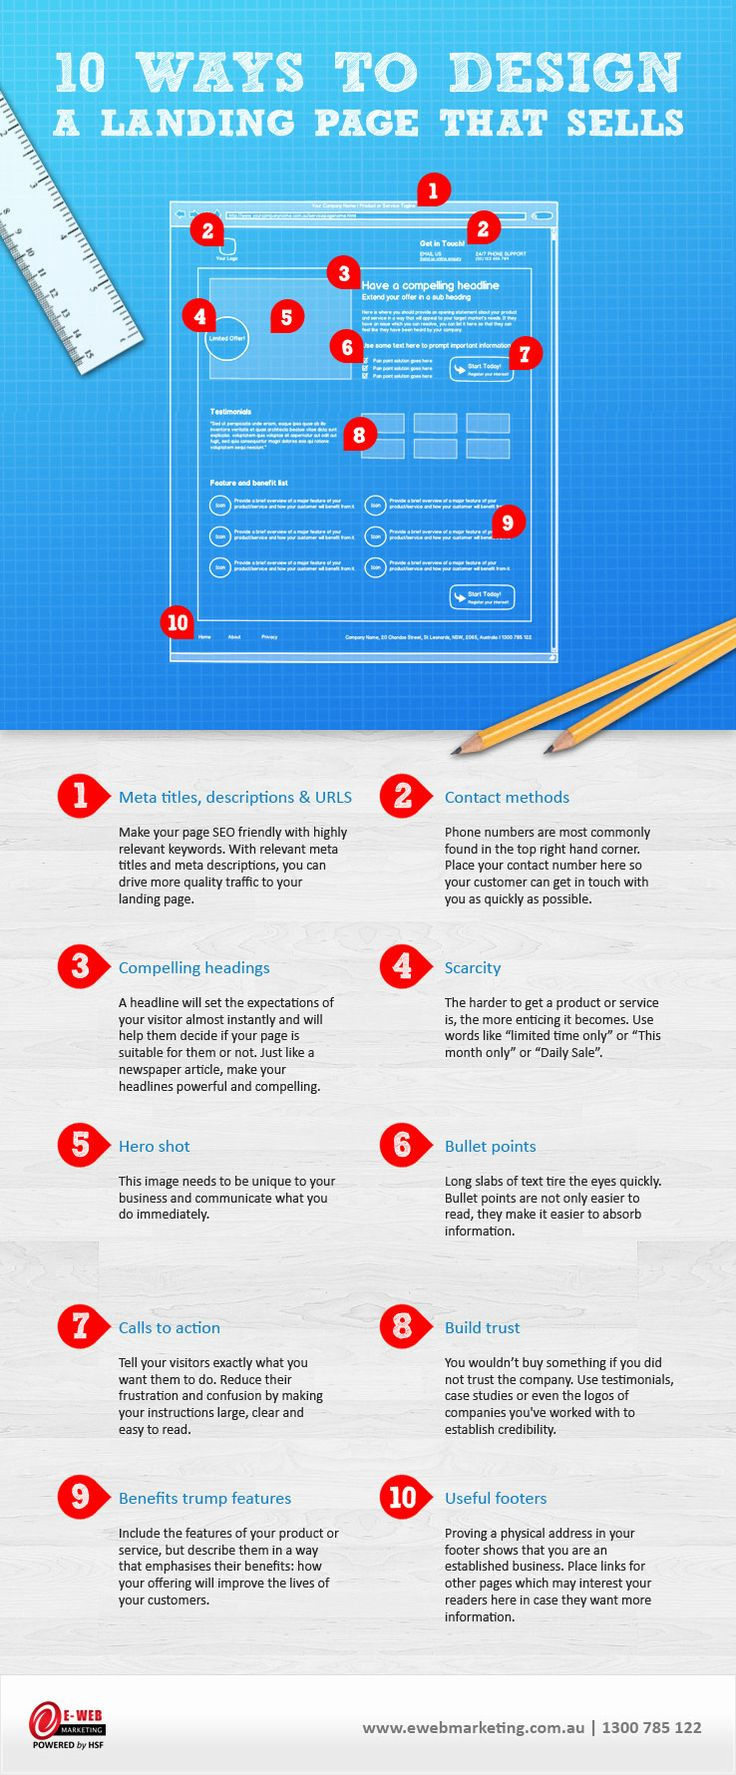 10 ways to design a landing page that sells